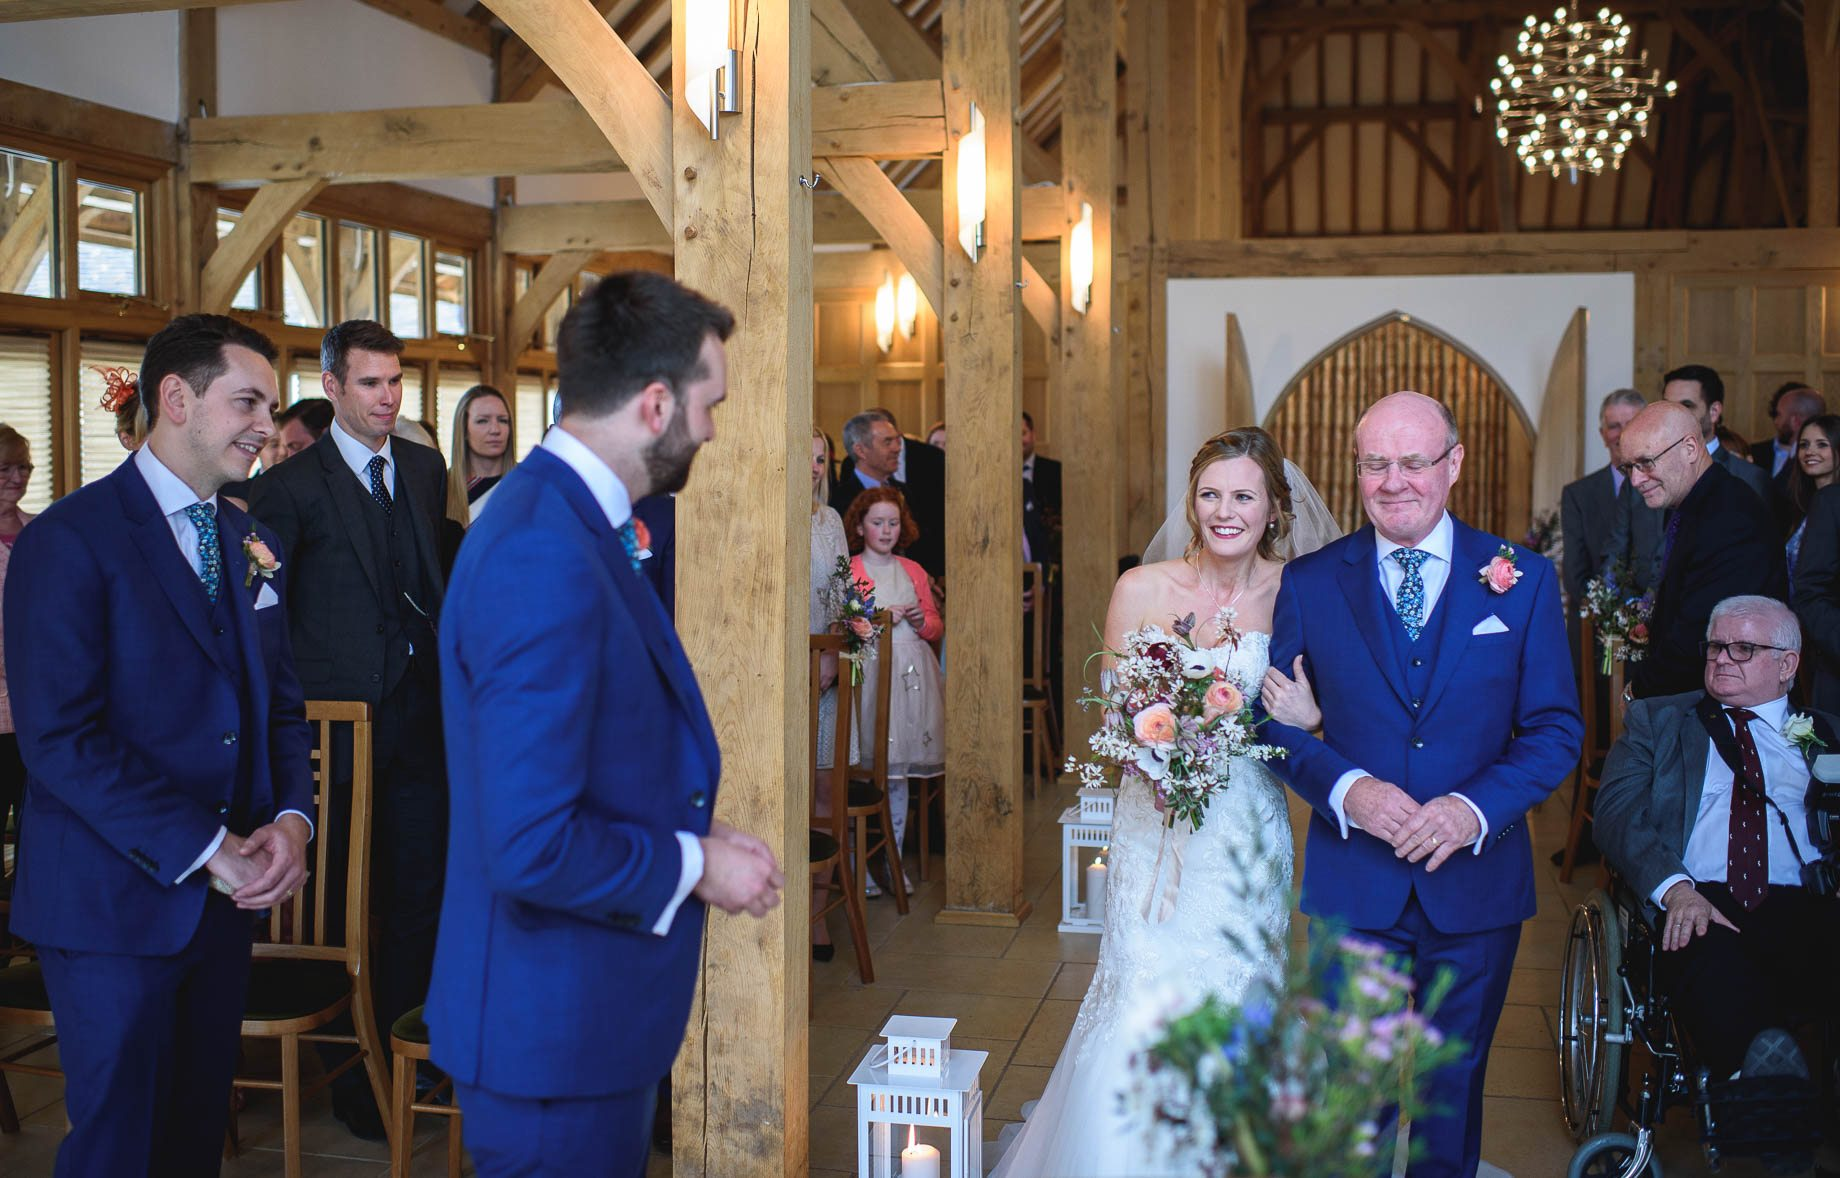 Rivervale Barn wedding photography by Guy Collier - Claire and Simon (54 of 133)